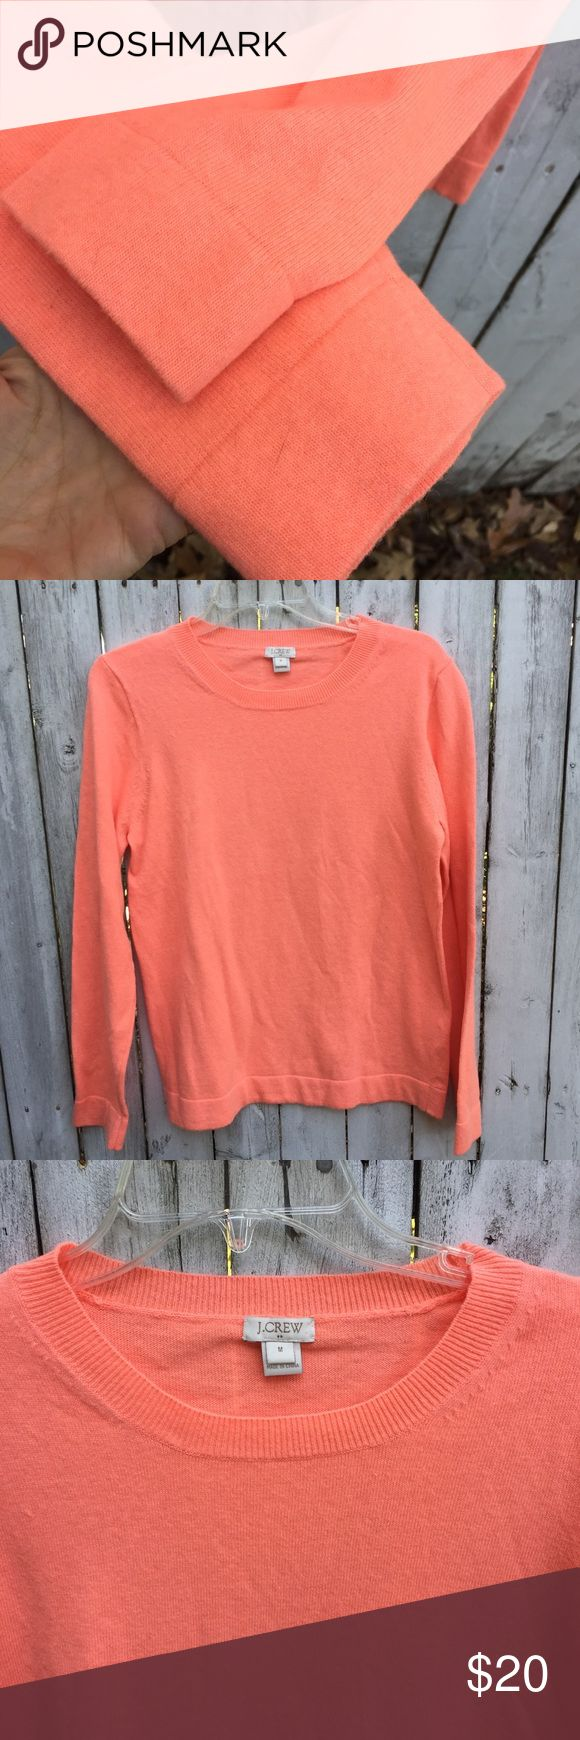 J crew Orange  women's crewneck sweater m J.Crew sweater crewneck women's size medium excellent condition sort of a orange sherbet or cantaloupe color Jcrew Sweaters Crew & Scoop Necks